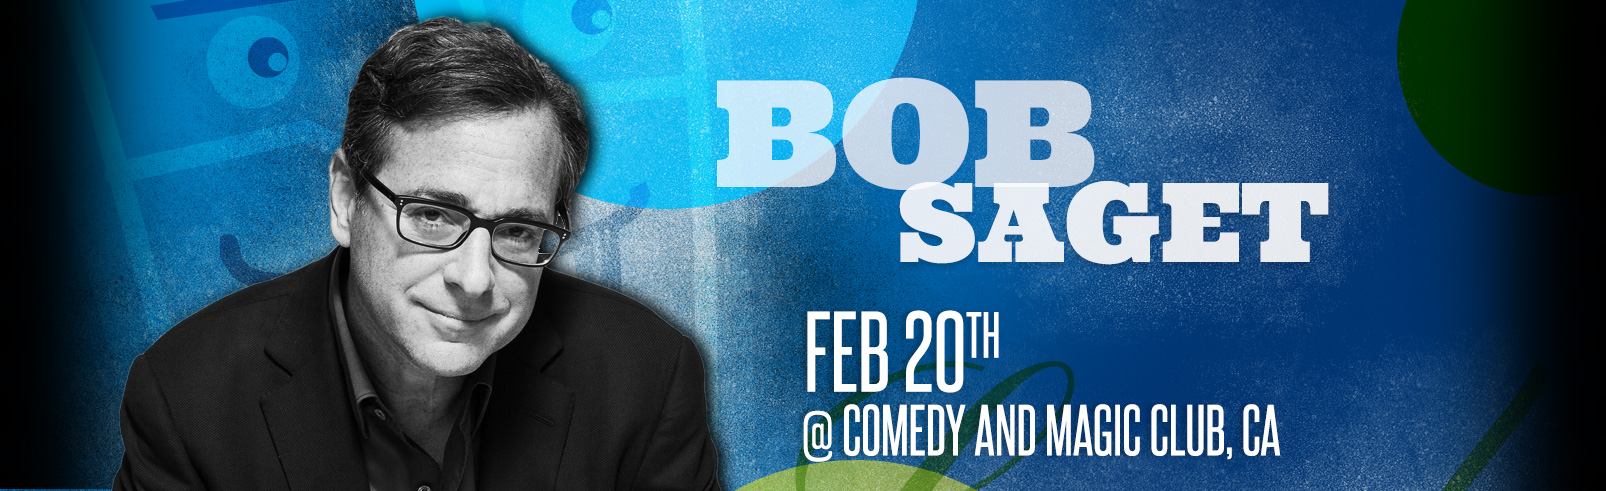 Bob Saget @ Comedy and Magic Club